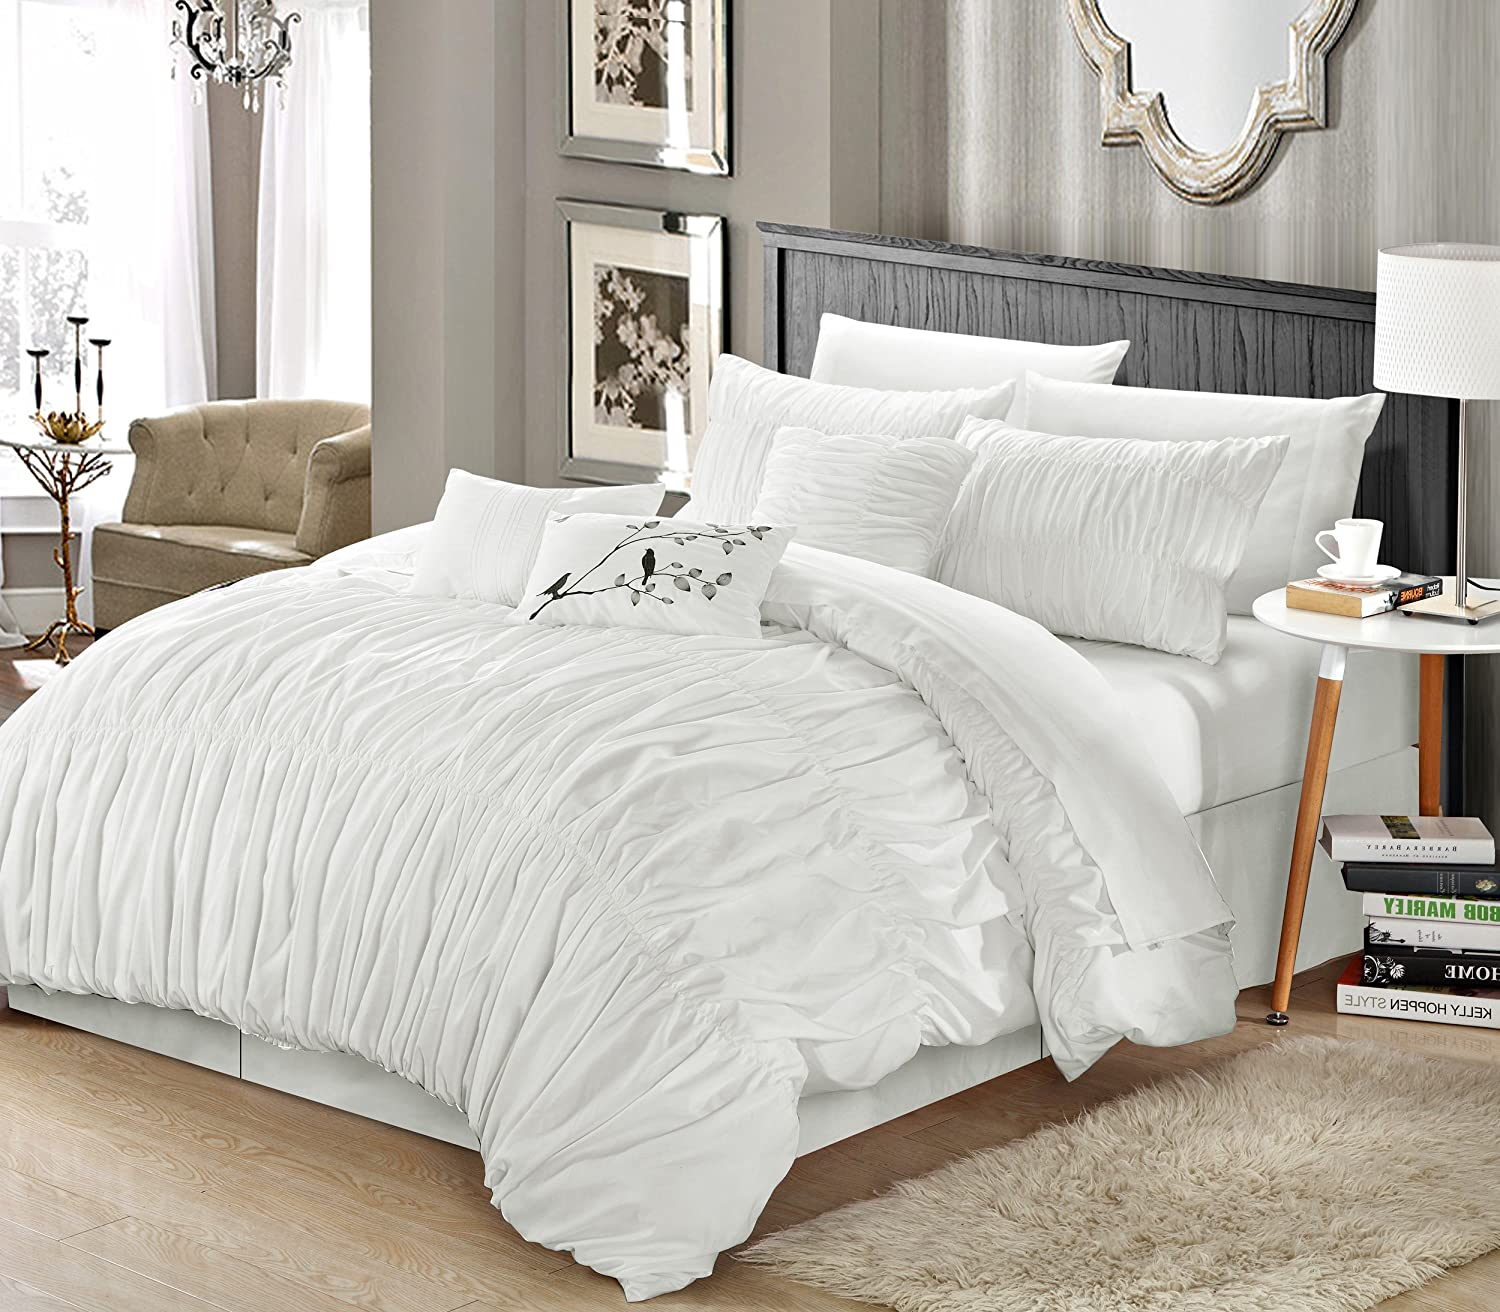 8pcs White Super Soft Pleated Stripe Bed-in-a-Bag Comforter Set and Sheet Set